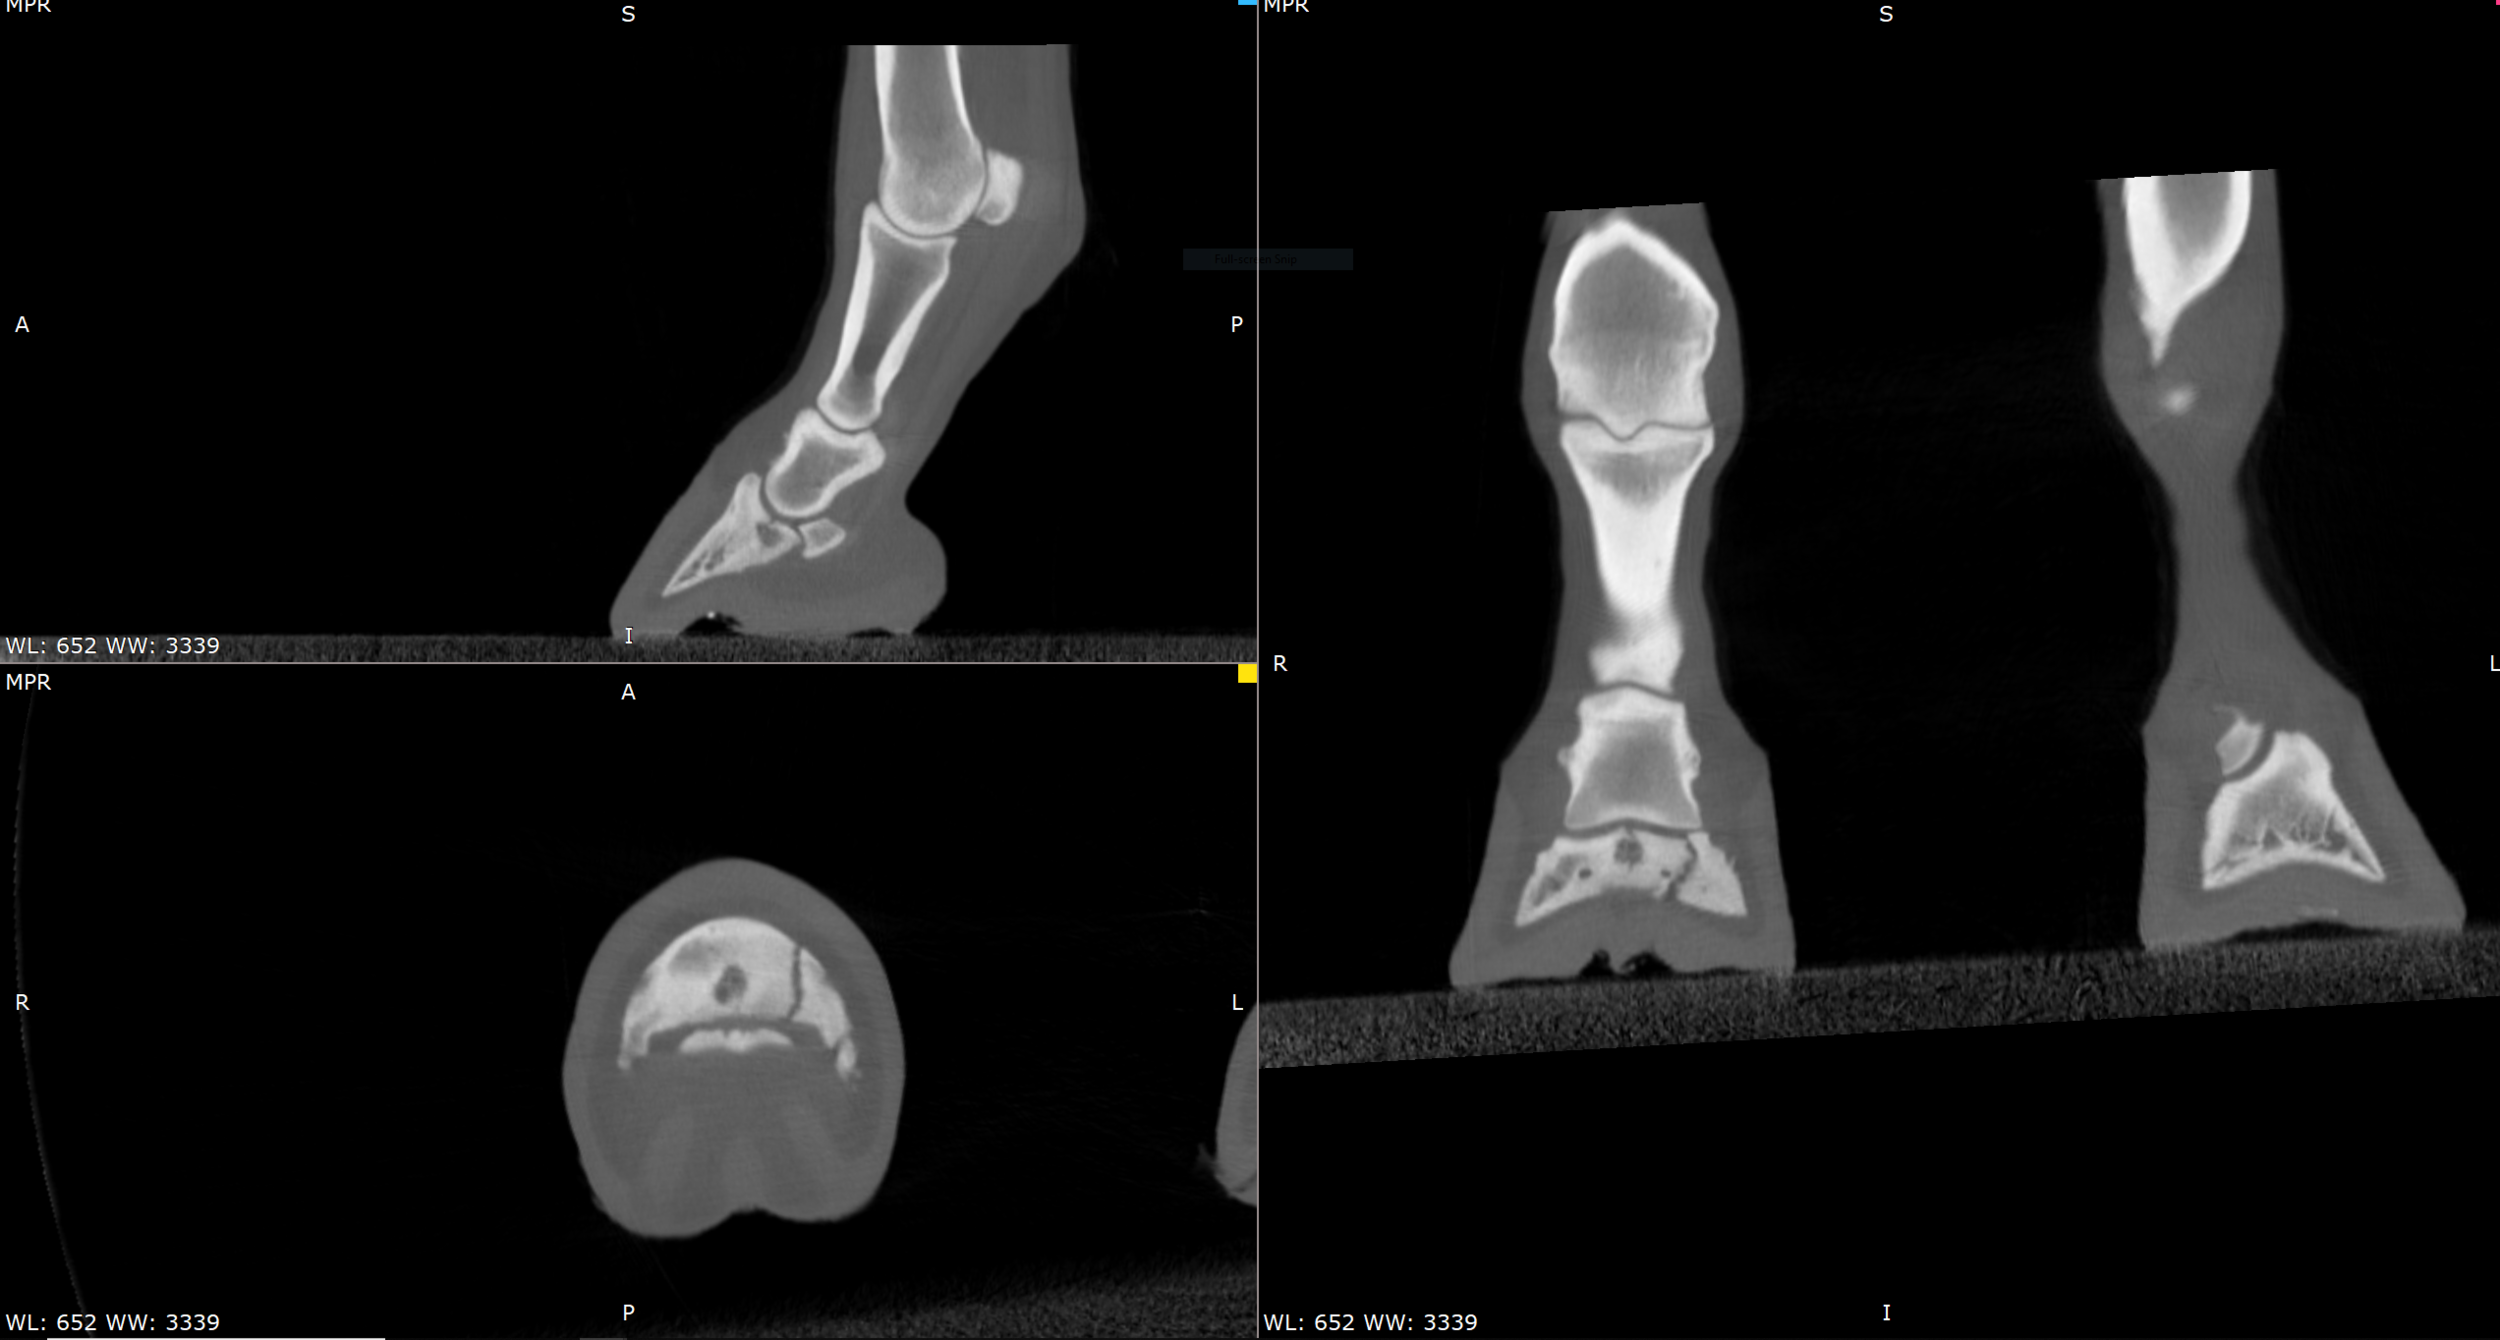 Retired racehorse with chronic P3 fracture